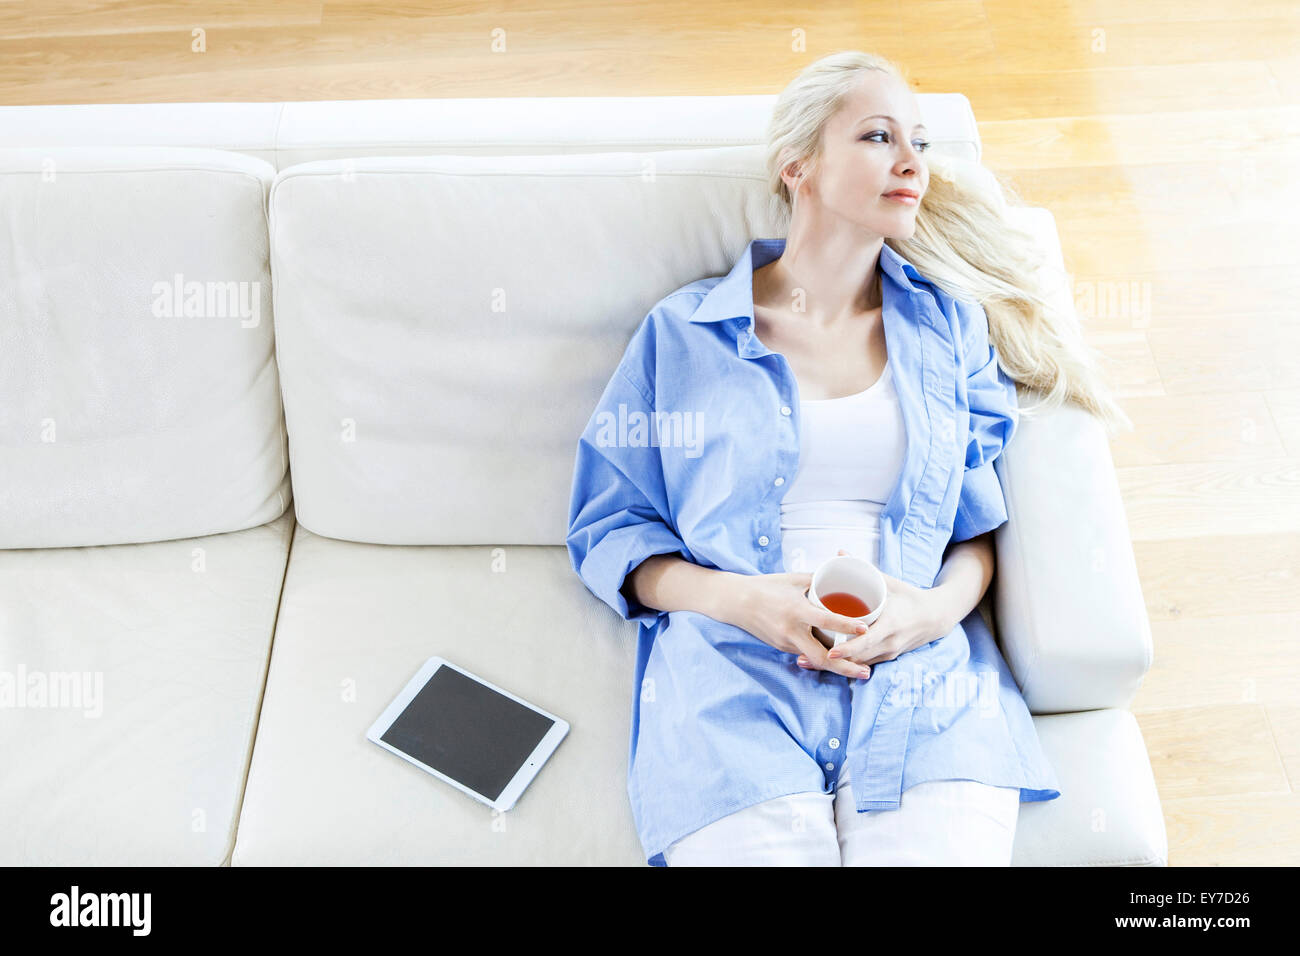 Blond woman sits on sofa day dreaming - Stock Image